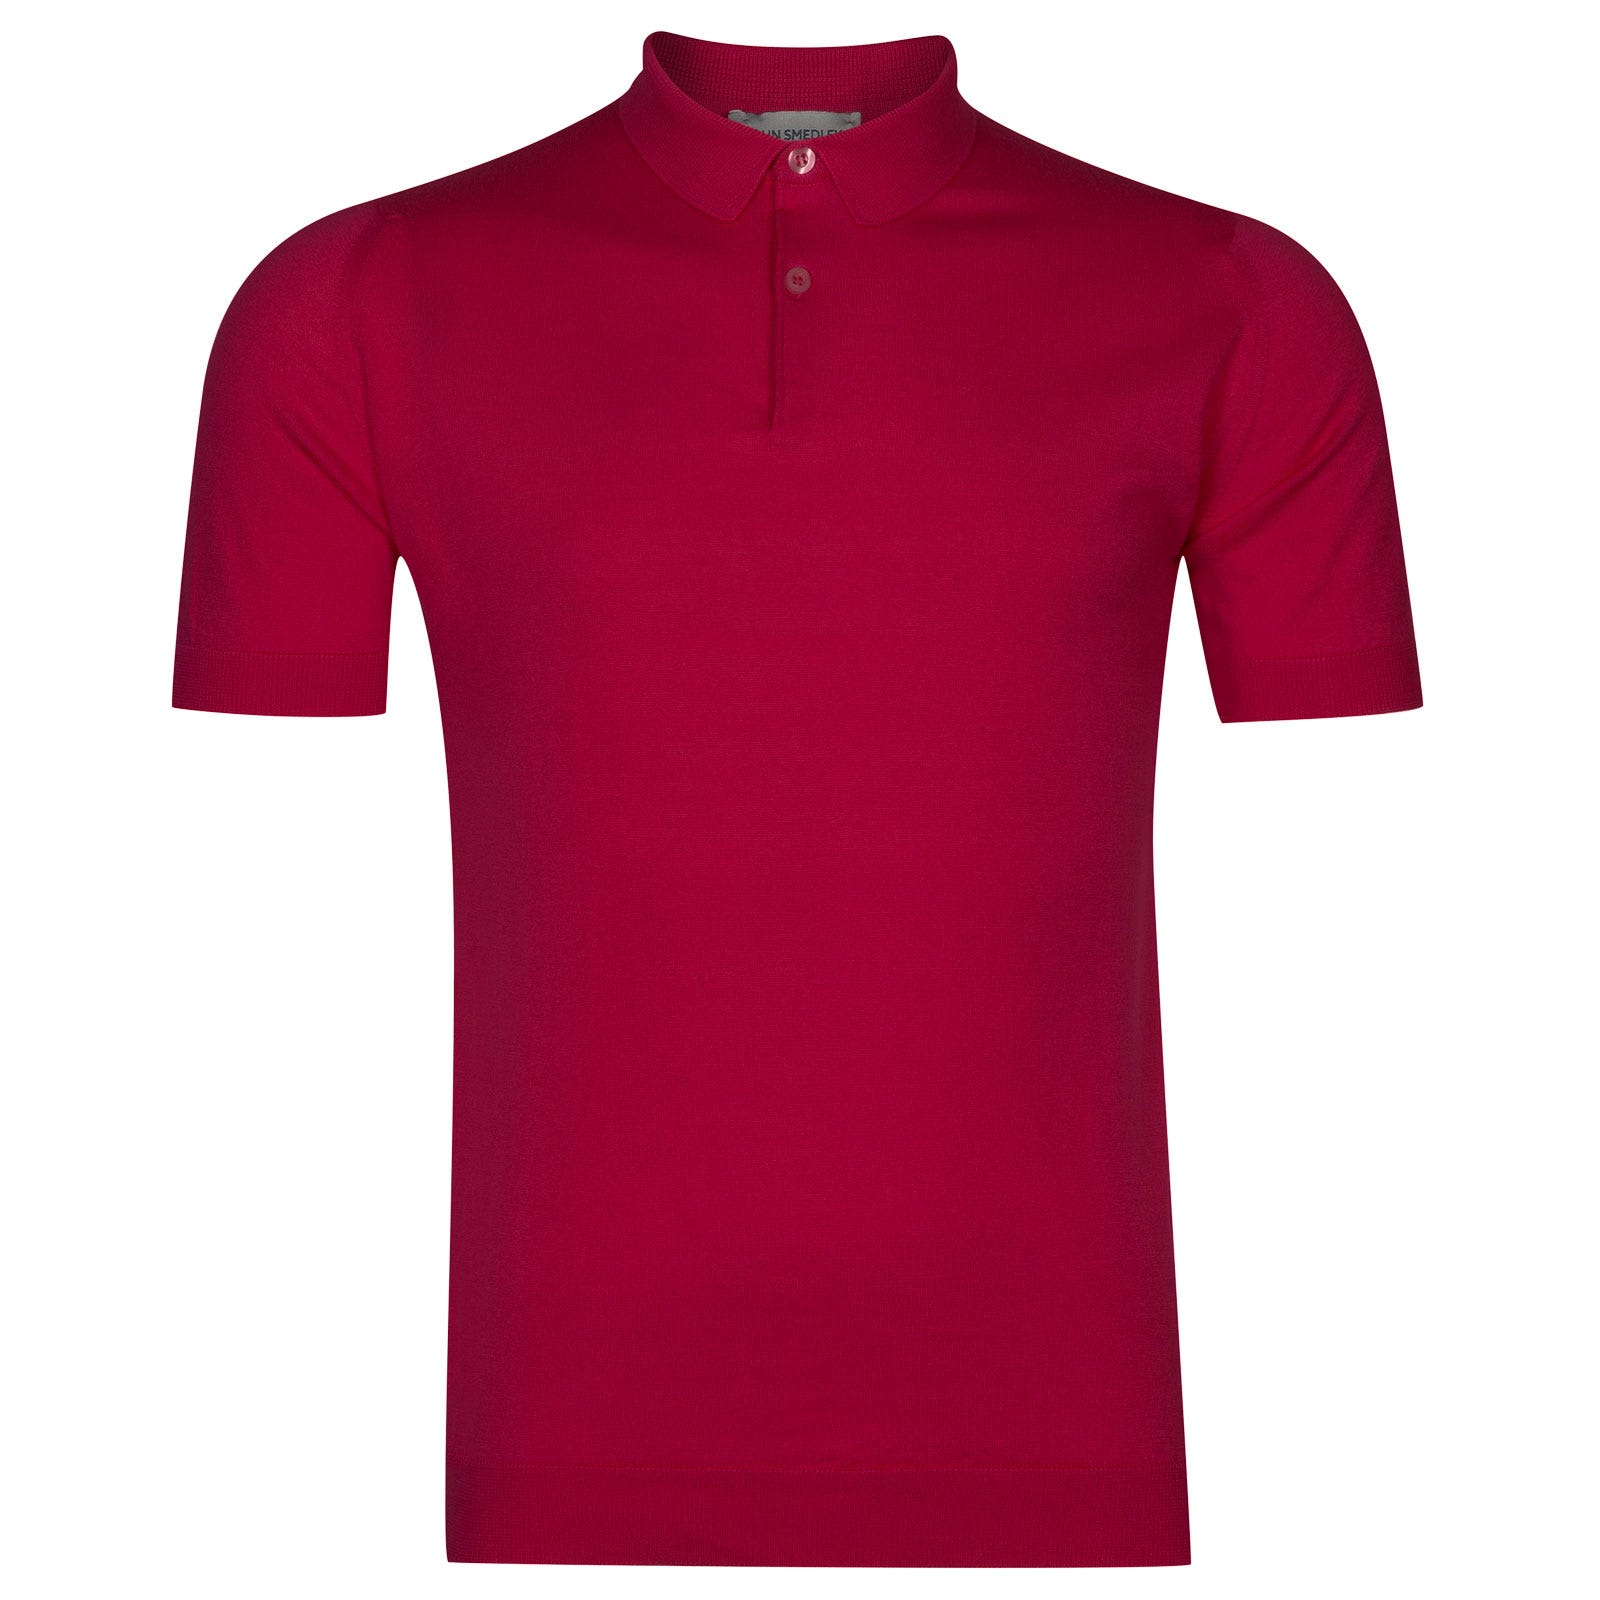 John Smedley rhodes Sea Island Cotton Shirt in Scarlet Sky-XL